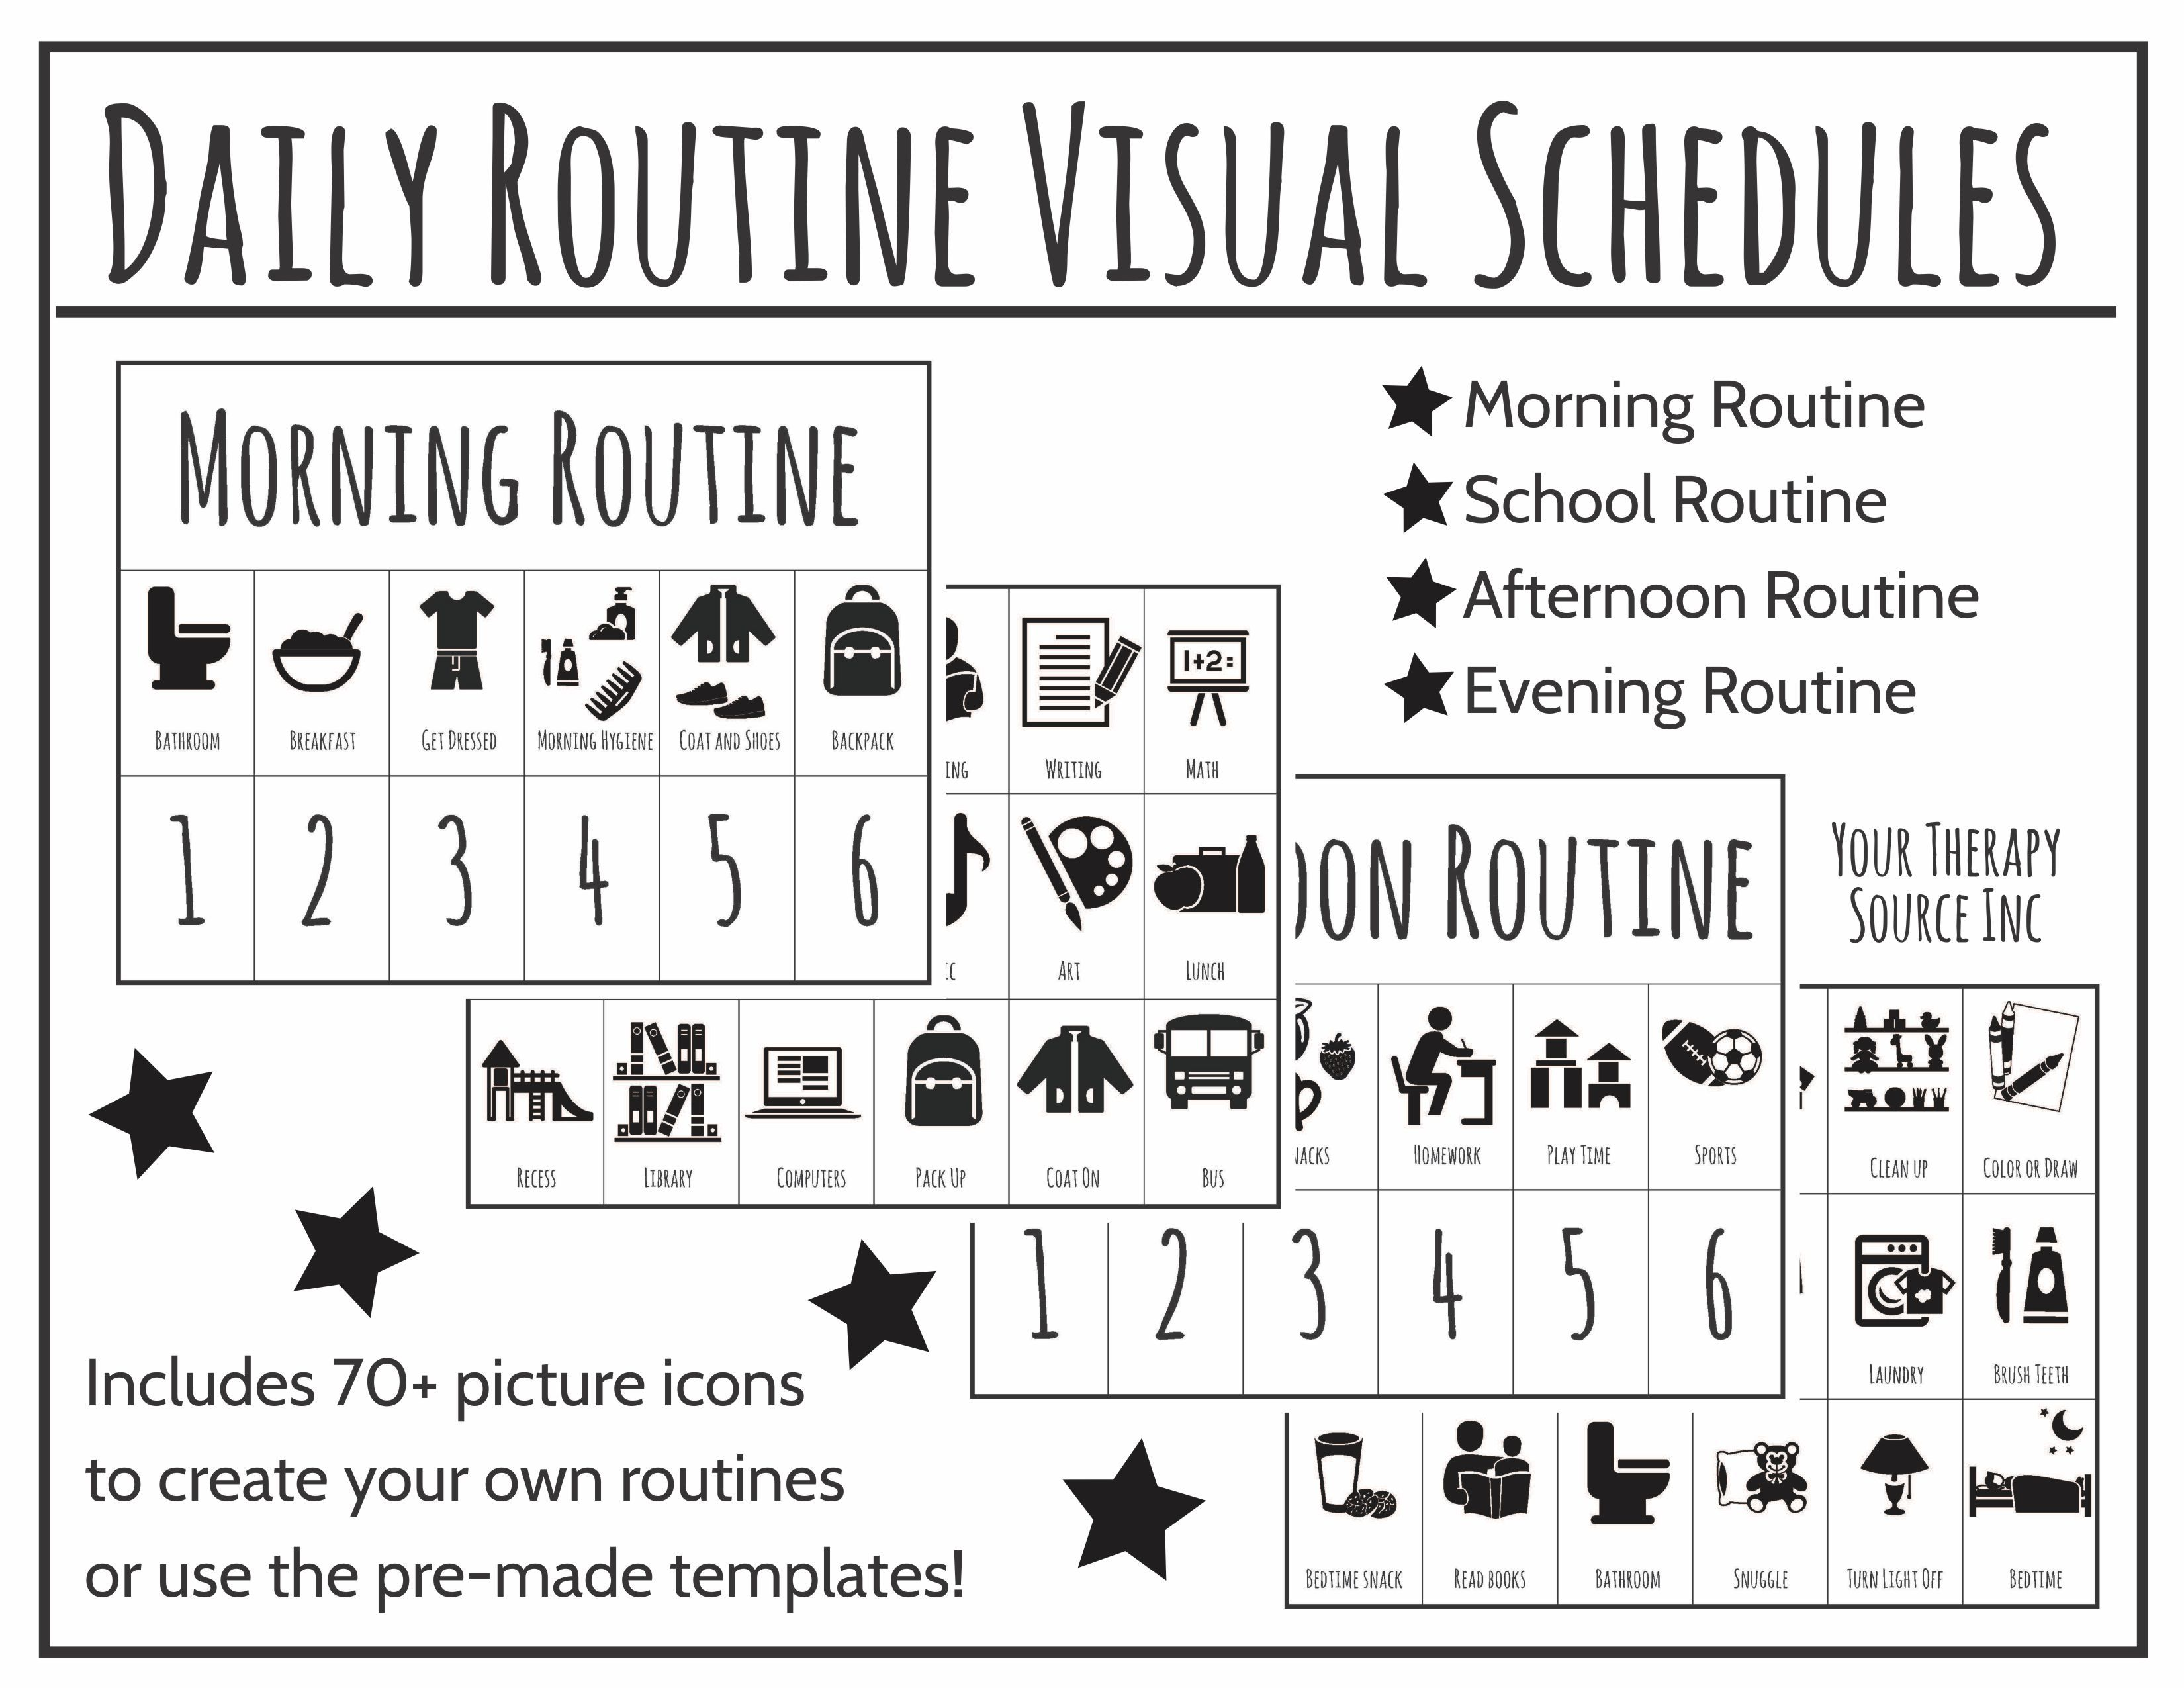 daily routine visual schedules adhd executive functioning spd